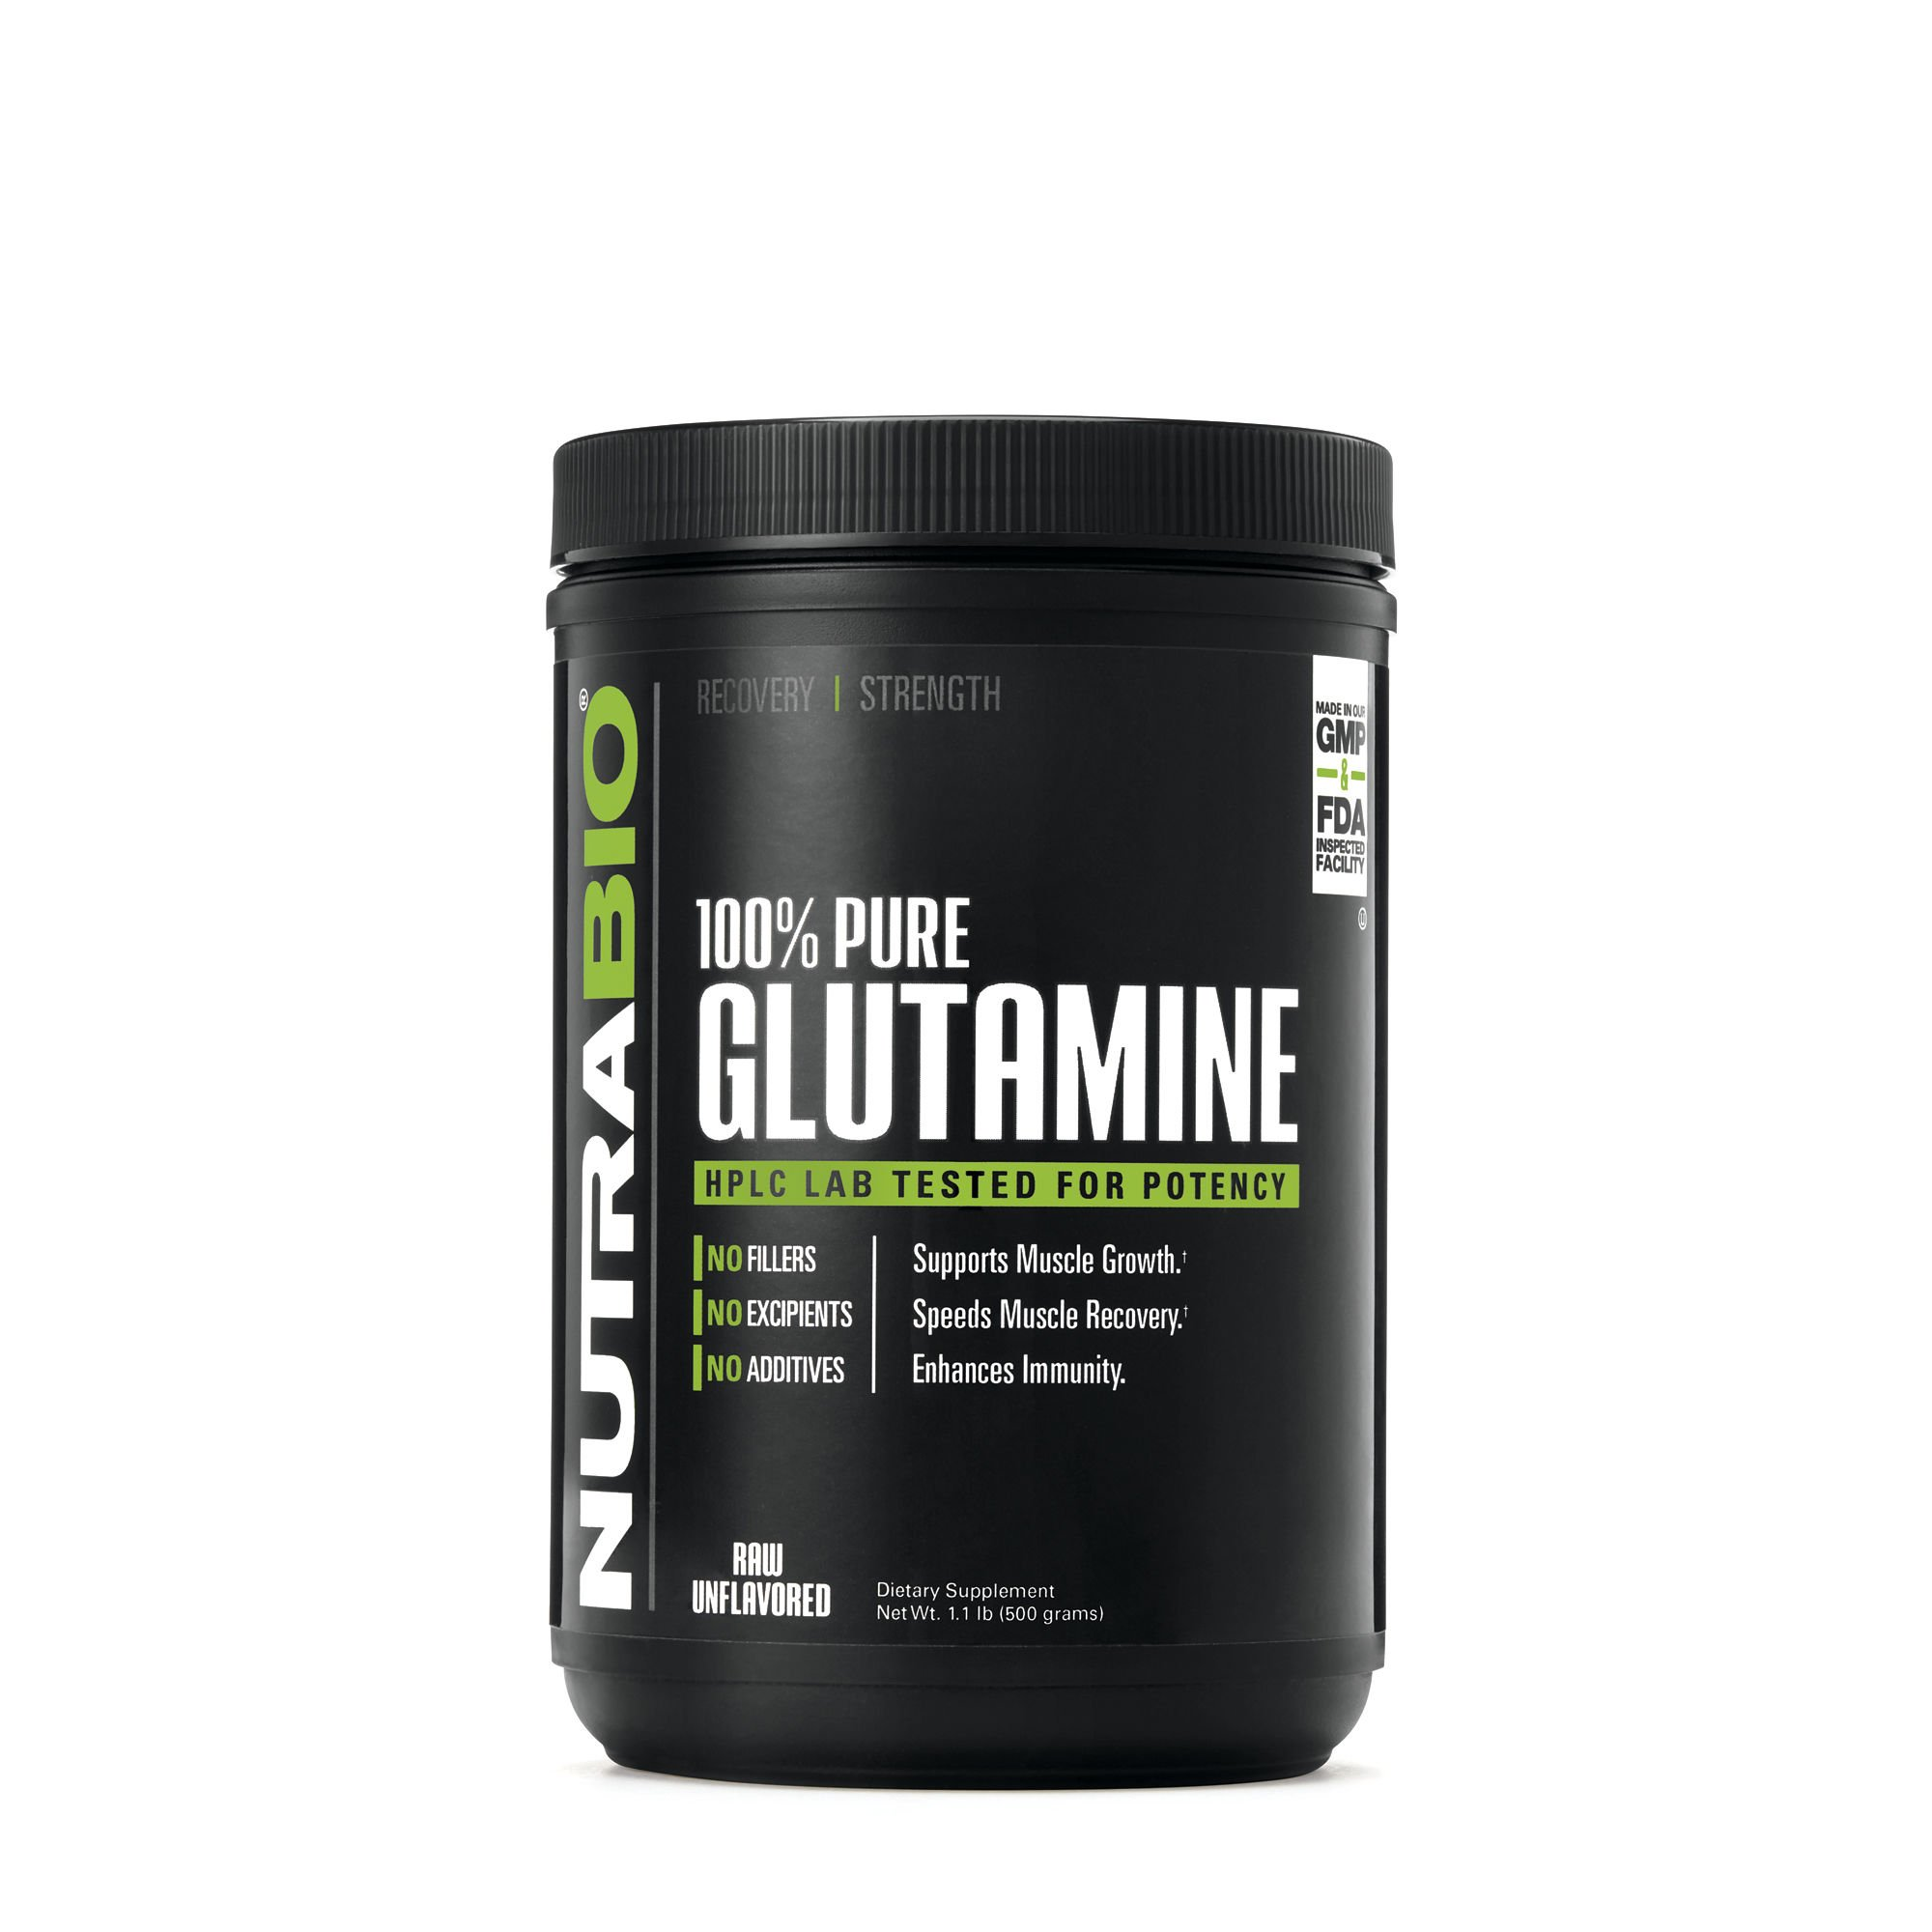 NutraBio 100% Pure L-Glutamine Powder - 500 Grams - HPLC Tested, Micronized, Unflavored, No Additives or Fillers, GMP. Post Workout Muscle Recovery Supplement.